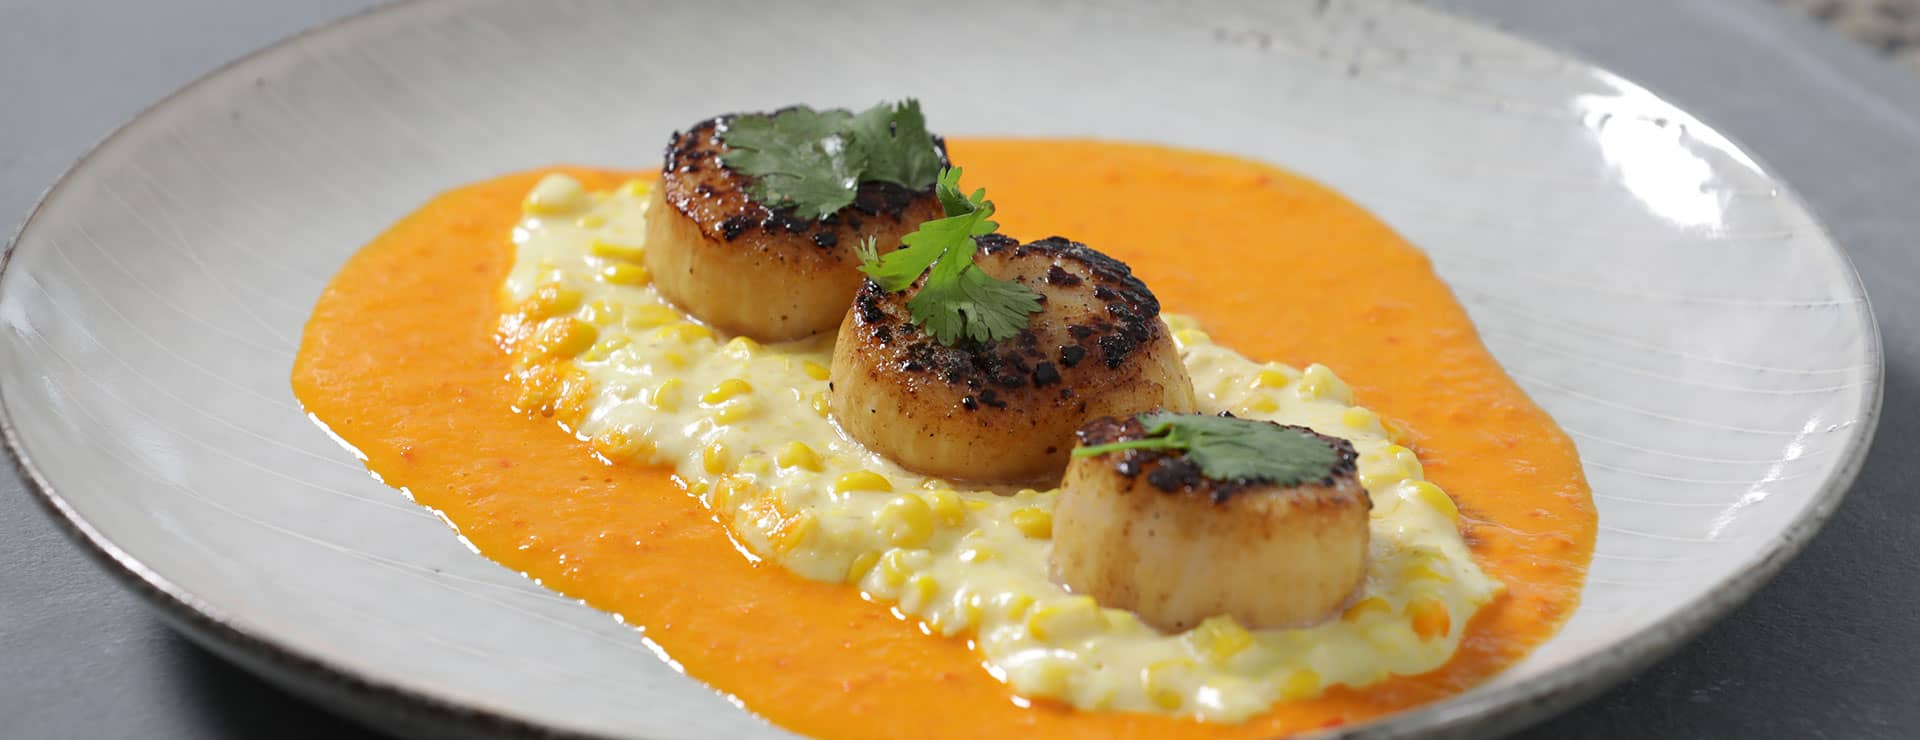 North Atlantic Sea Scallops with Creamy Corn and Red pepper Coulis